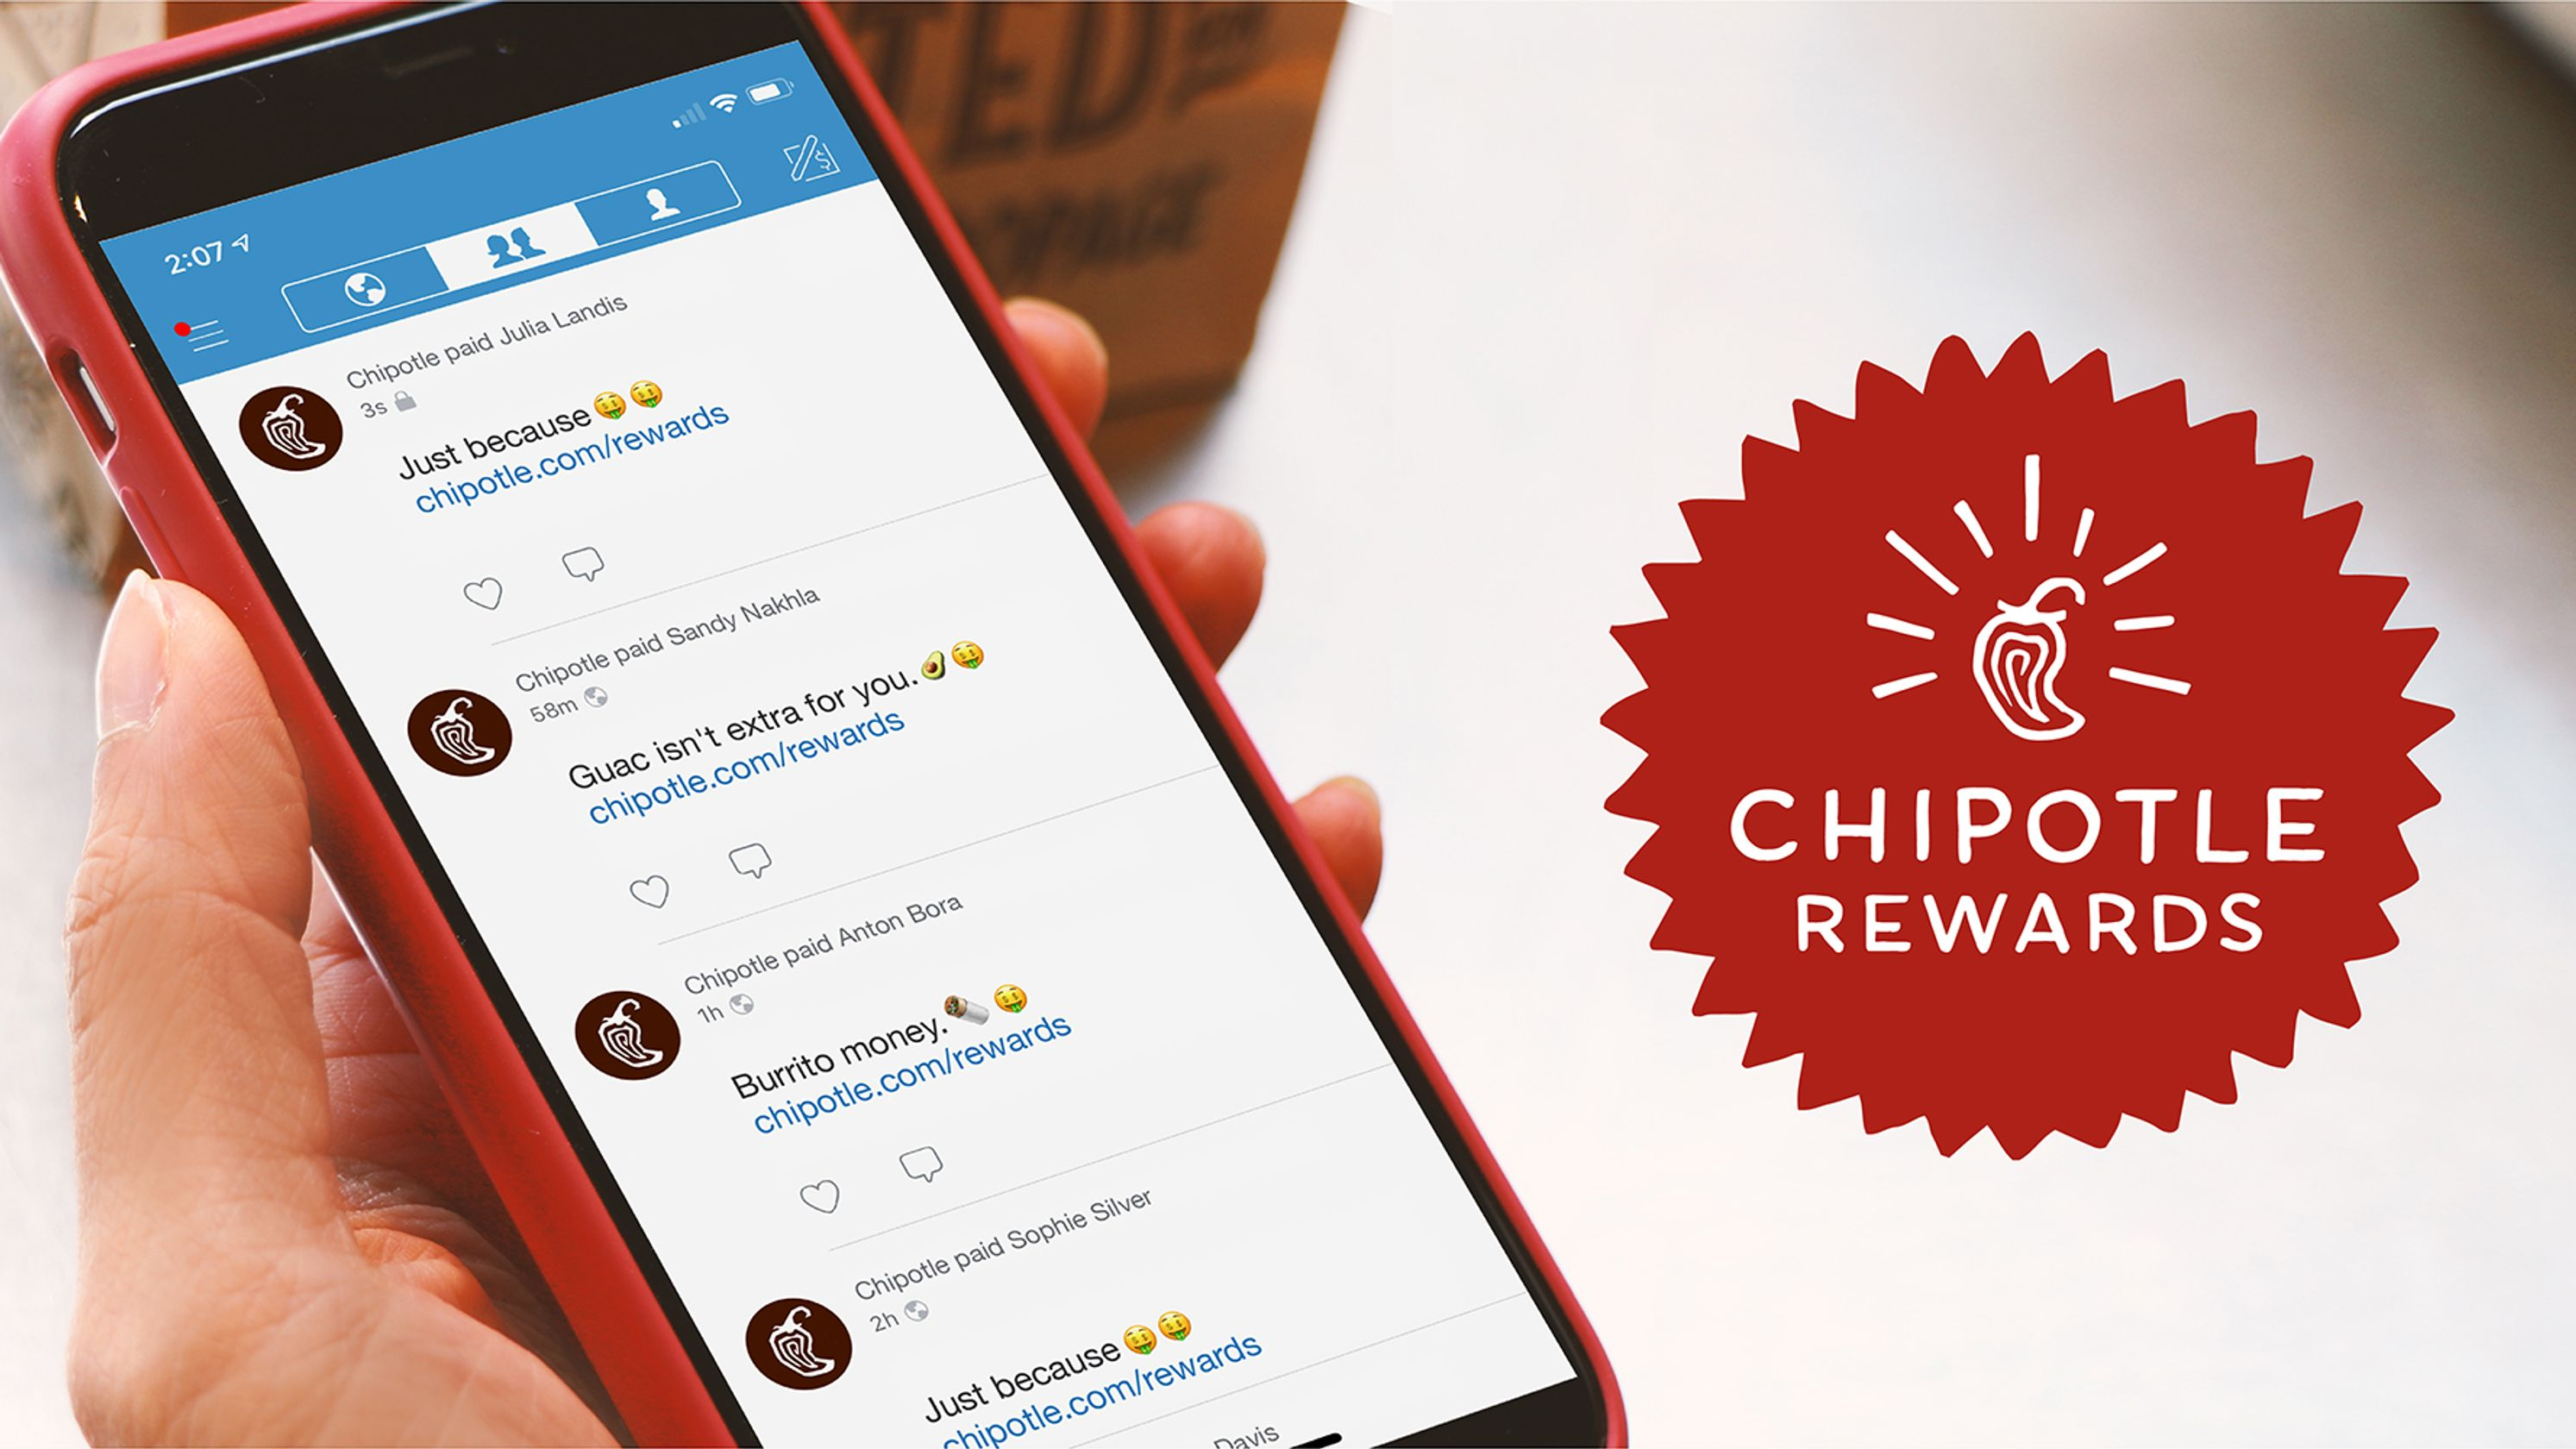 Chipotle's rewards program